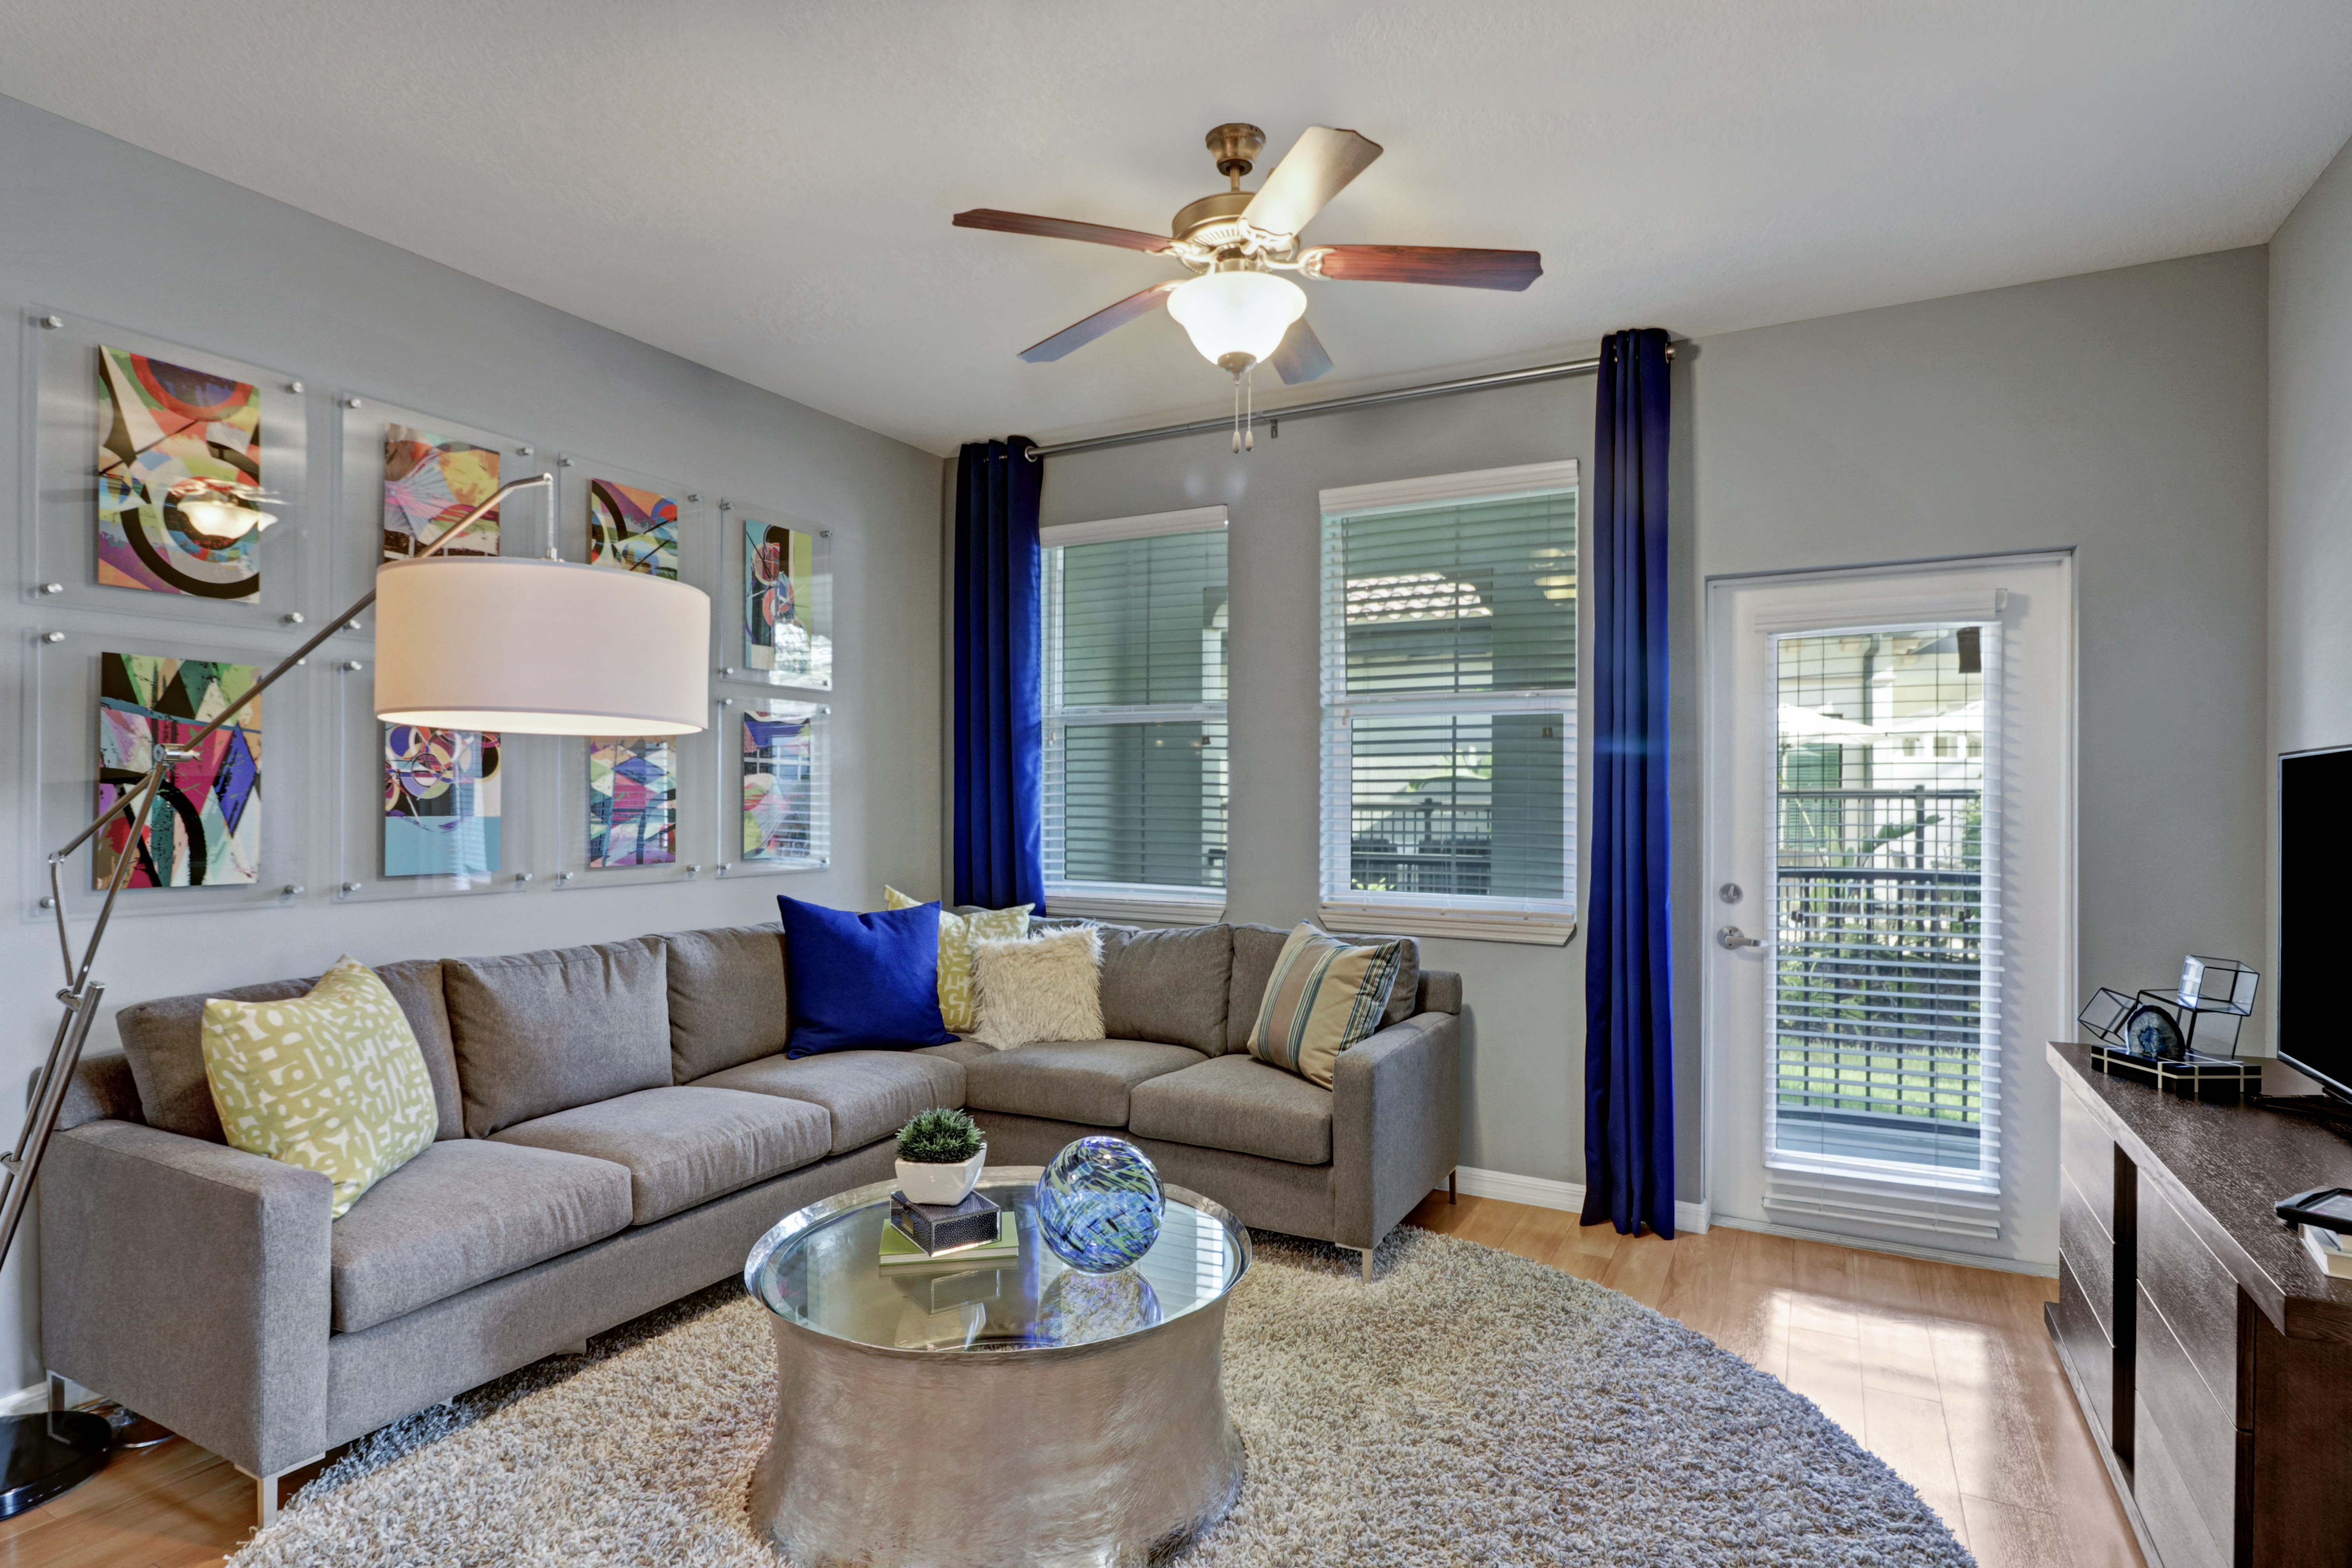 Living room with modern furnishings at Linden Pointe in Pompano Beach, Florida